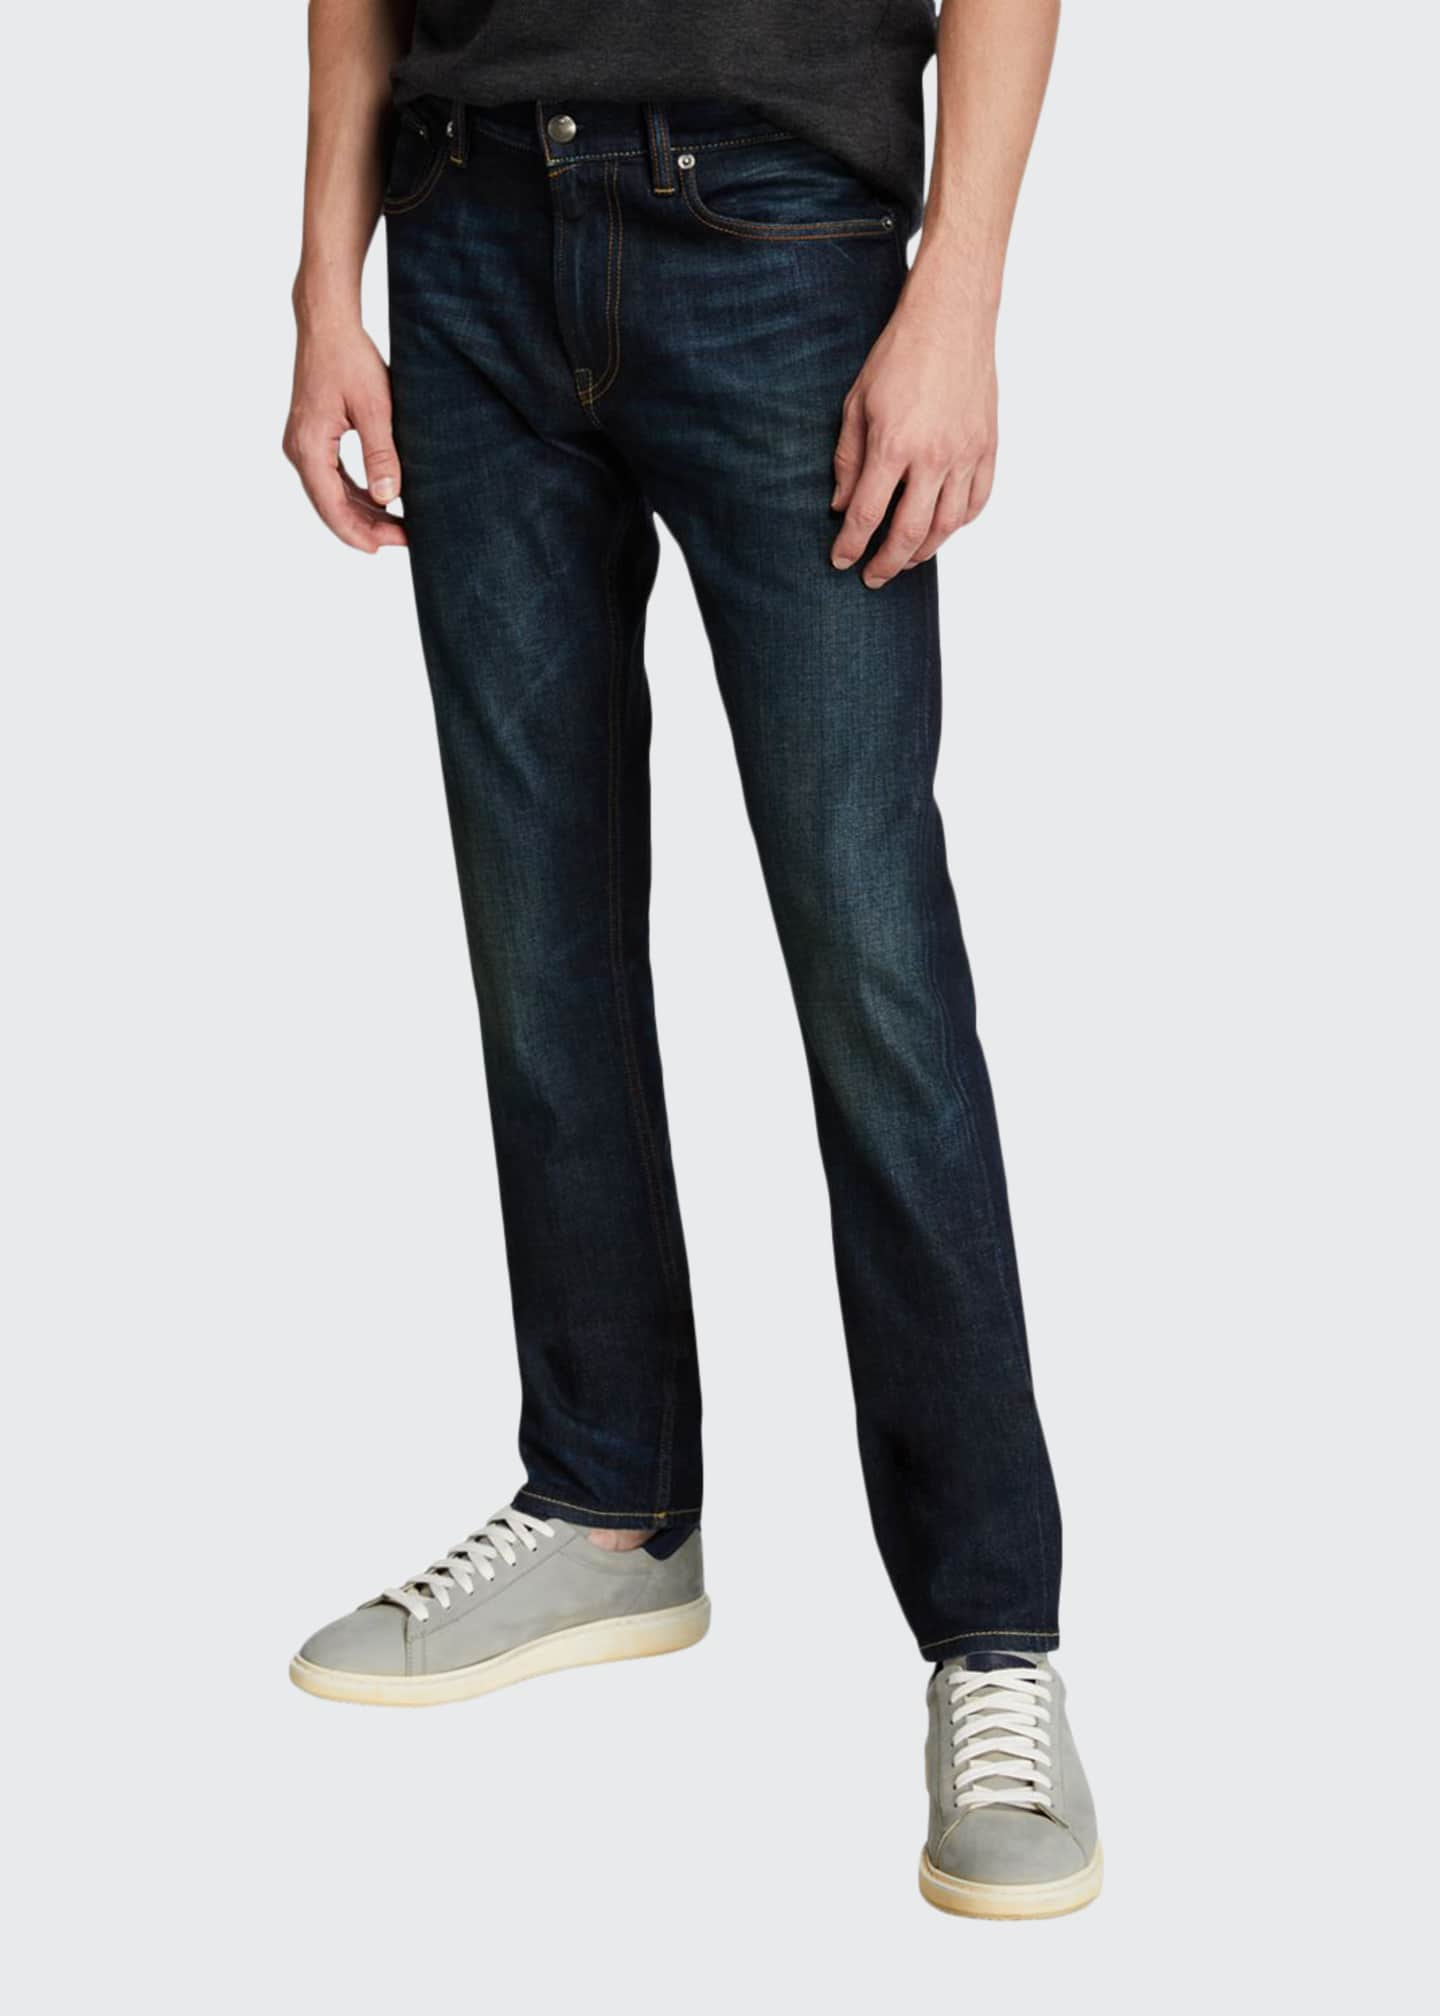 Men's Straight Denim Jeans